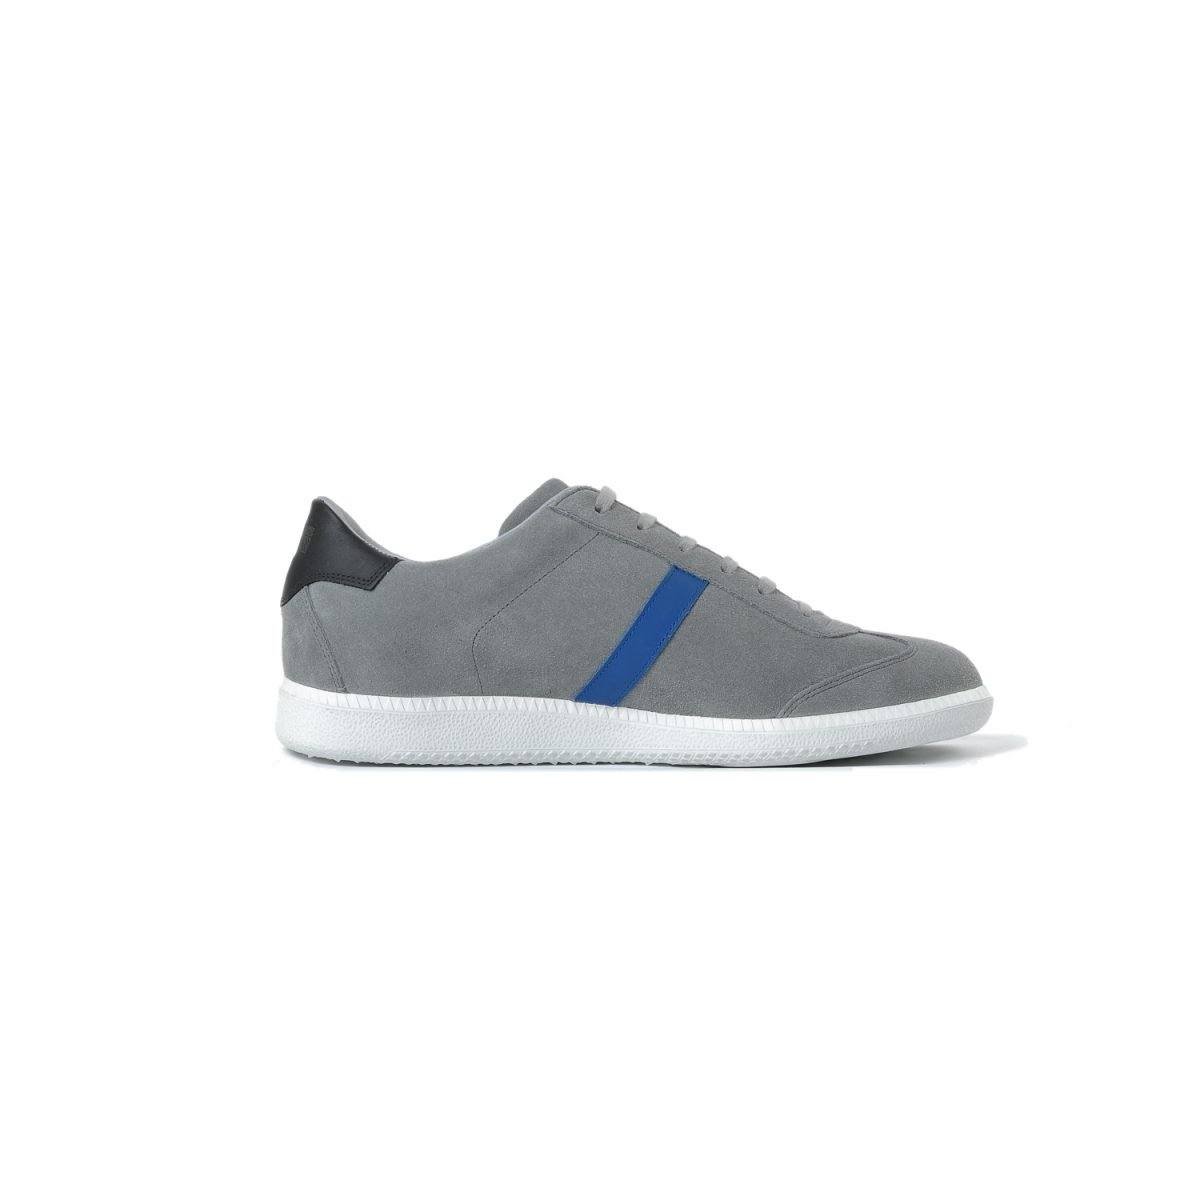 Tisza shoes - Comfort - Grey-black-royal